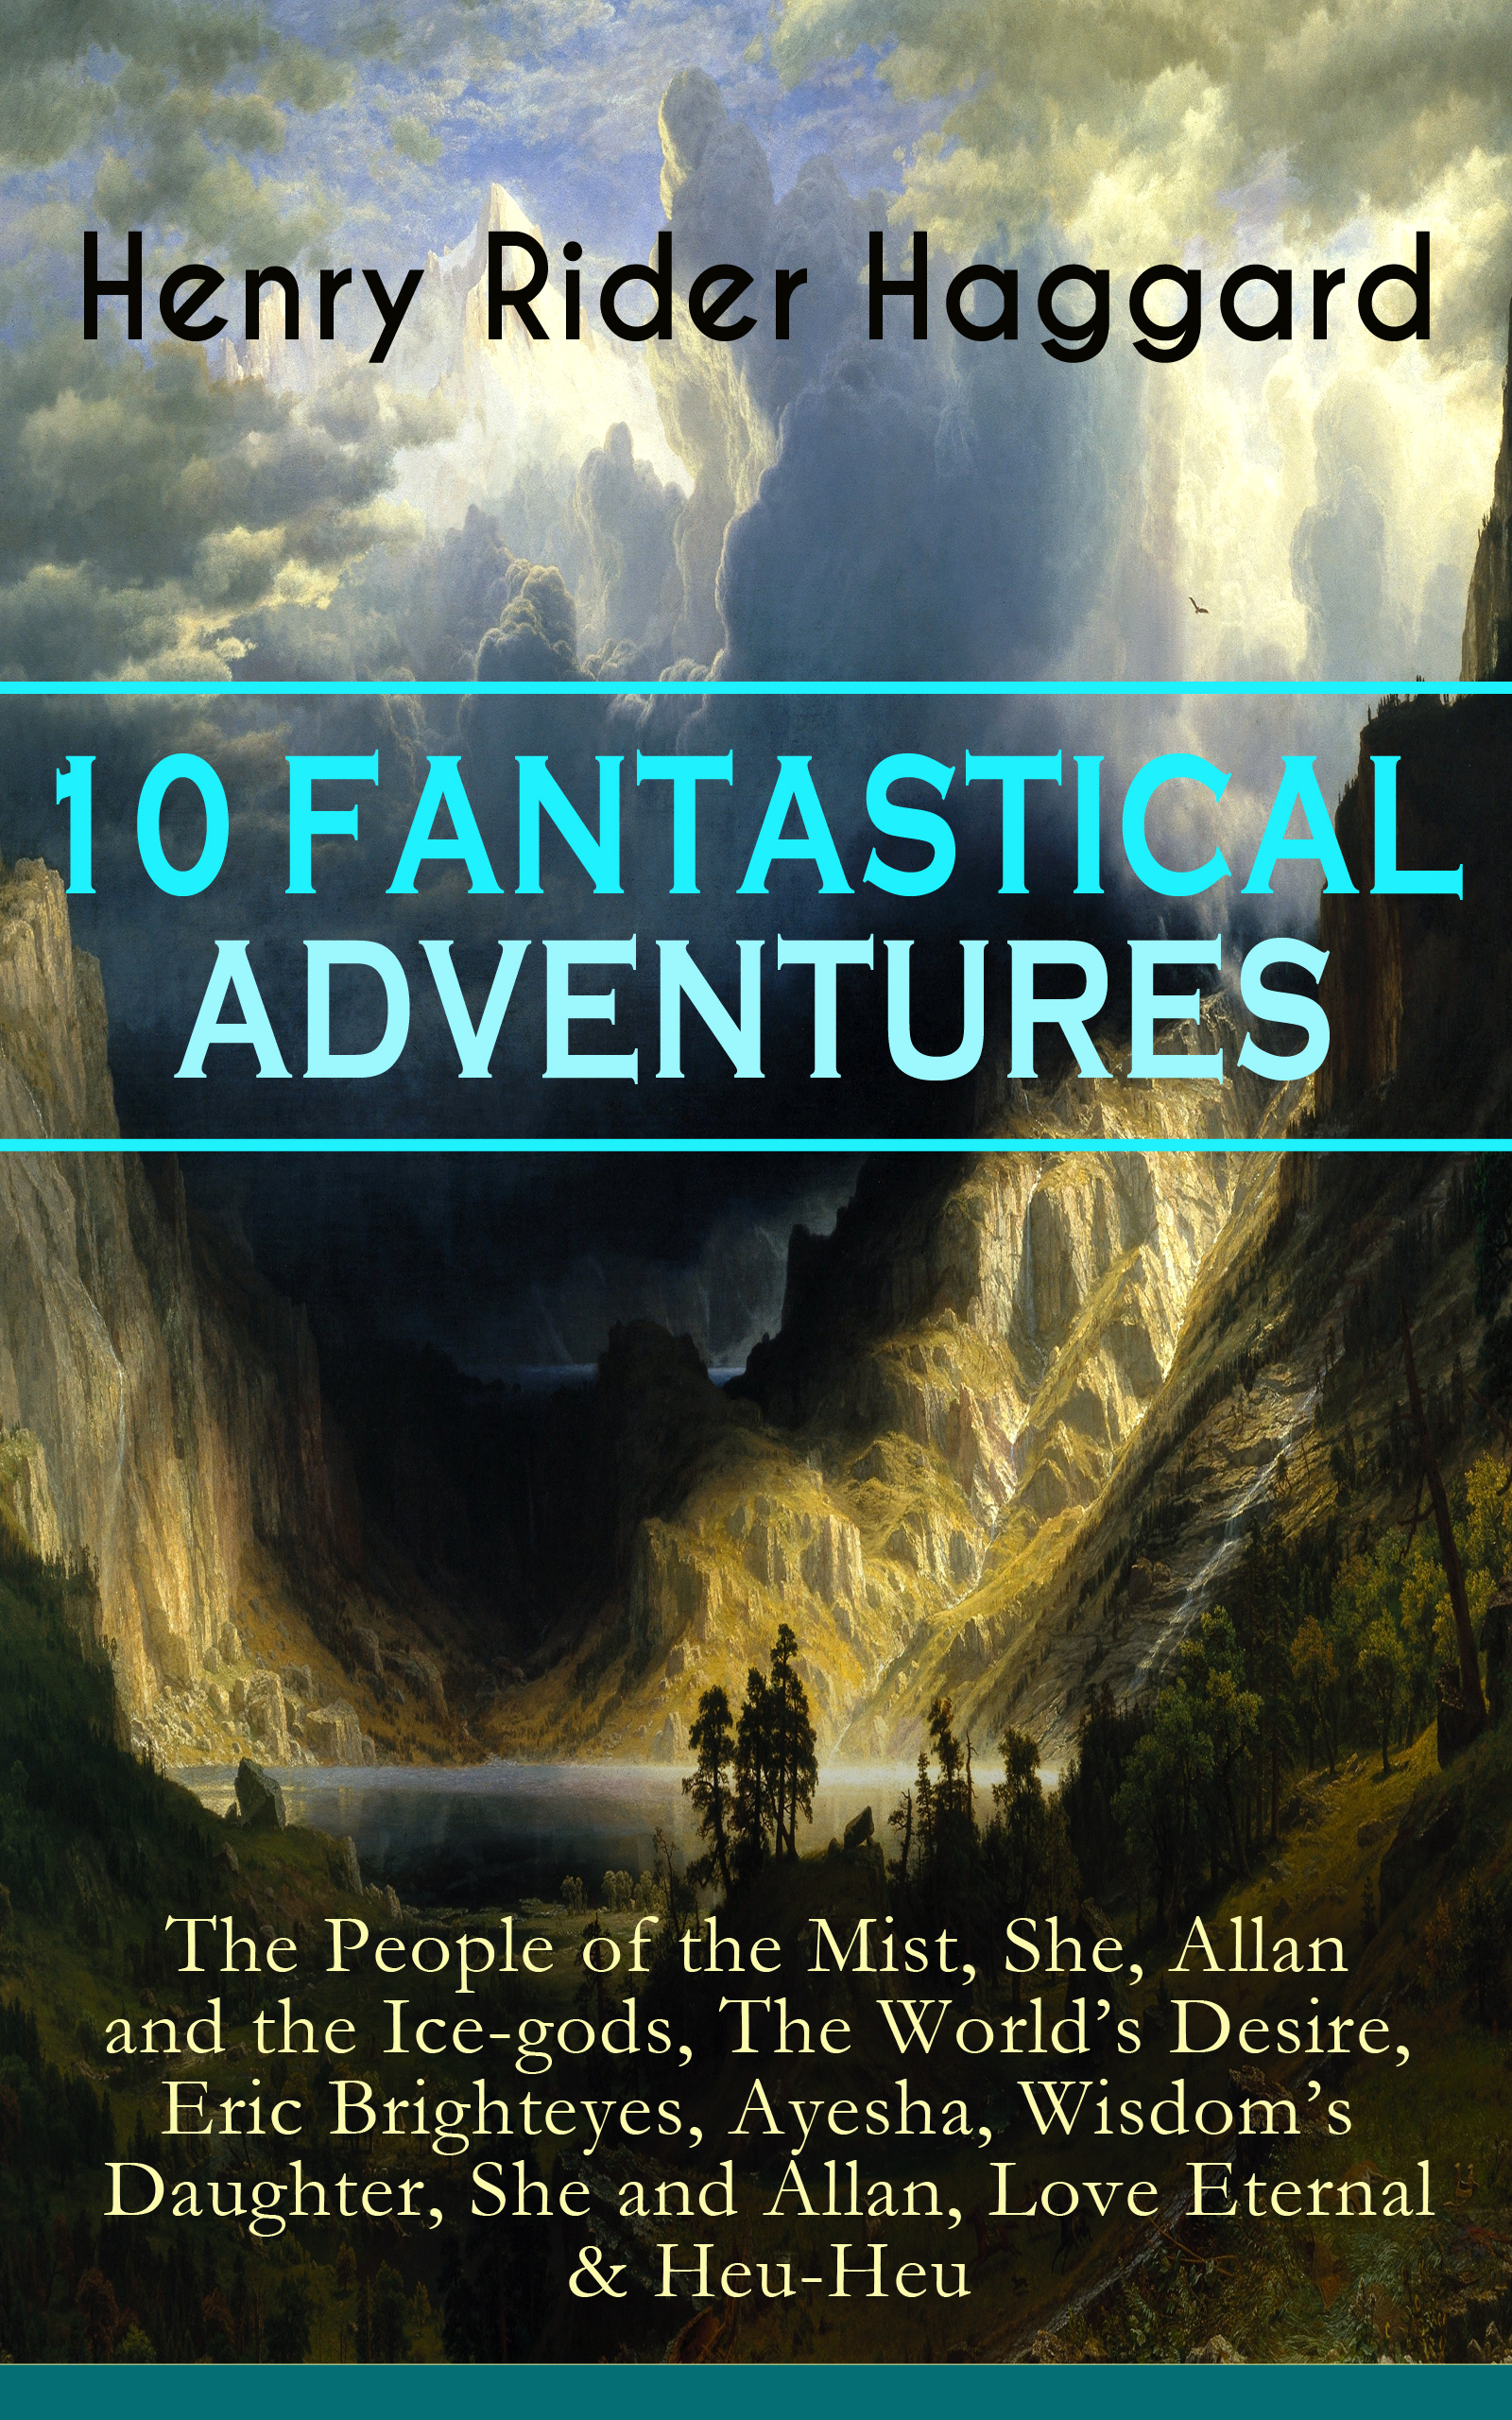 10 FANTASTICAL ADVENTURES: The People of the Mist, She, Allan and the Ice-gods, The World's Desire, Eric Brighteyes, Ayesha, Wisdom's Daughter, She and Allan, Love Eternal & Heu-Heu